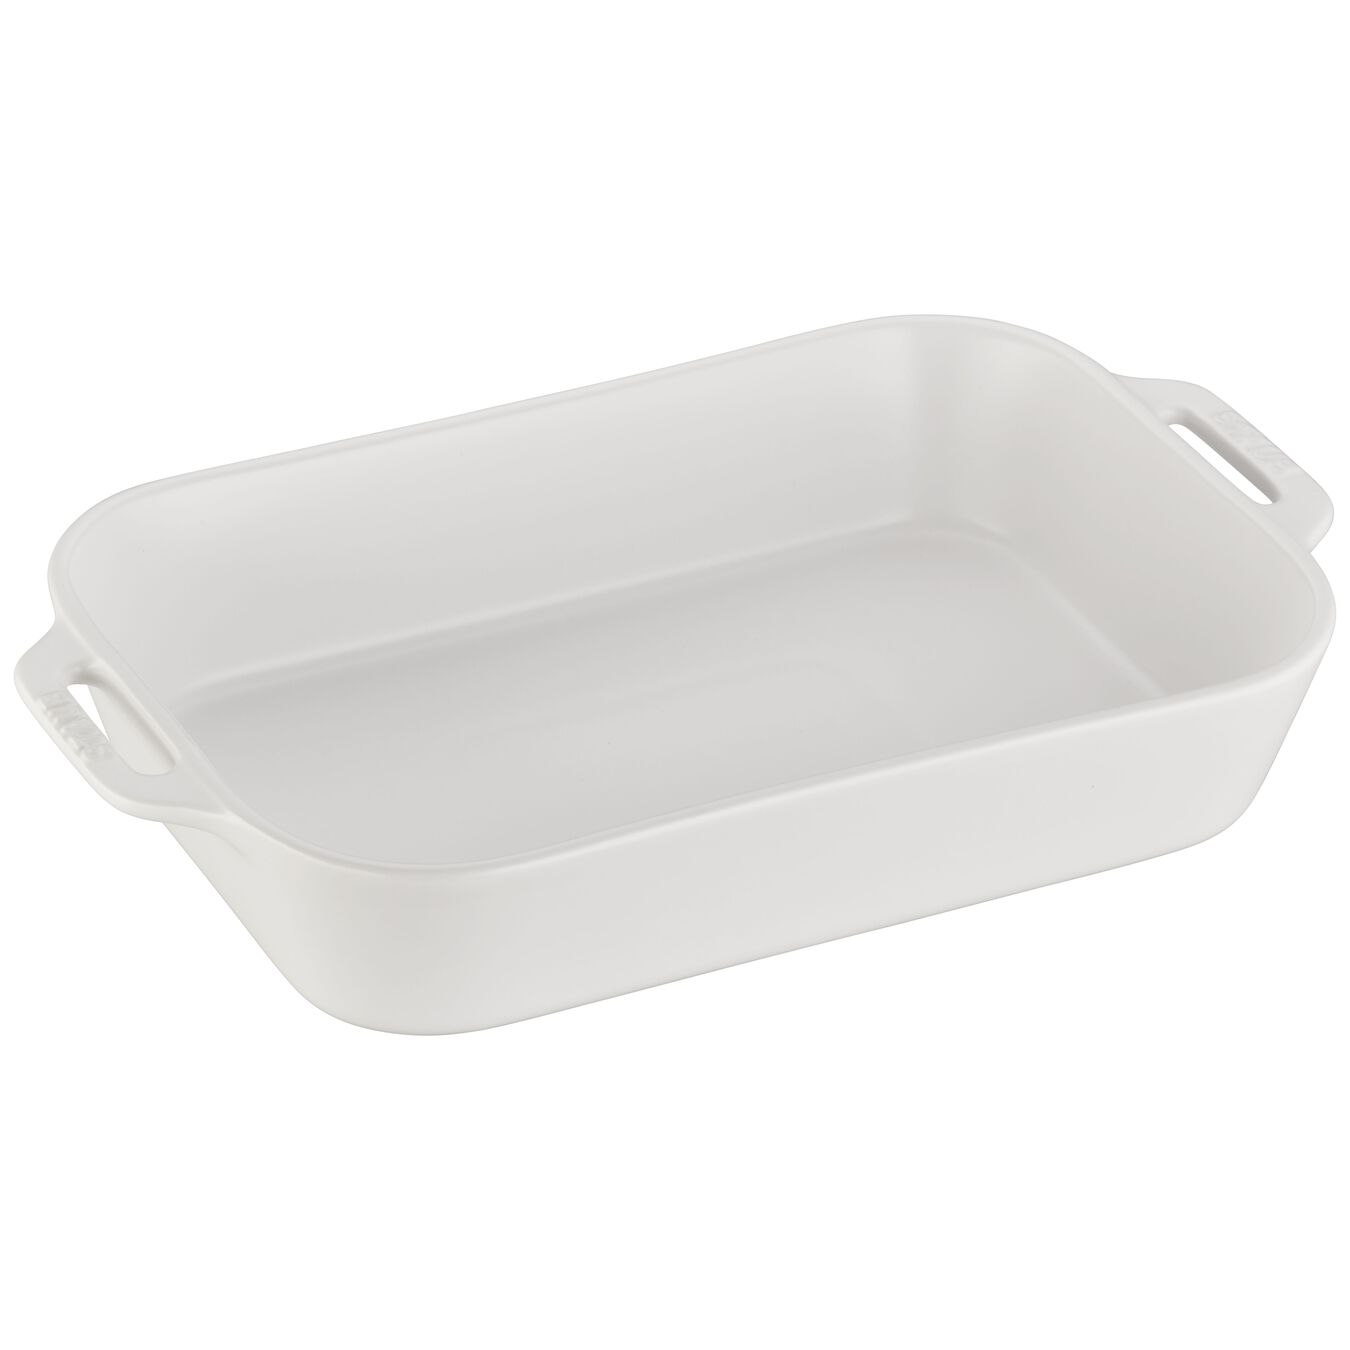 9-x 13-inch, rectangular, Oven dish, matte white,,large 1